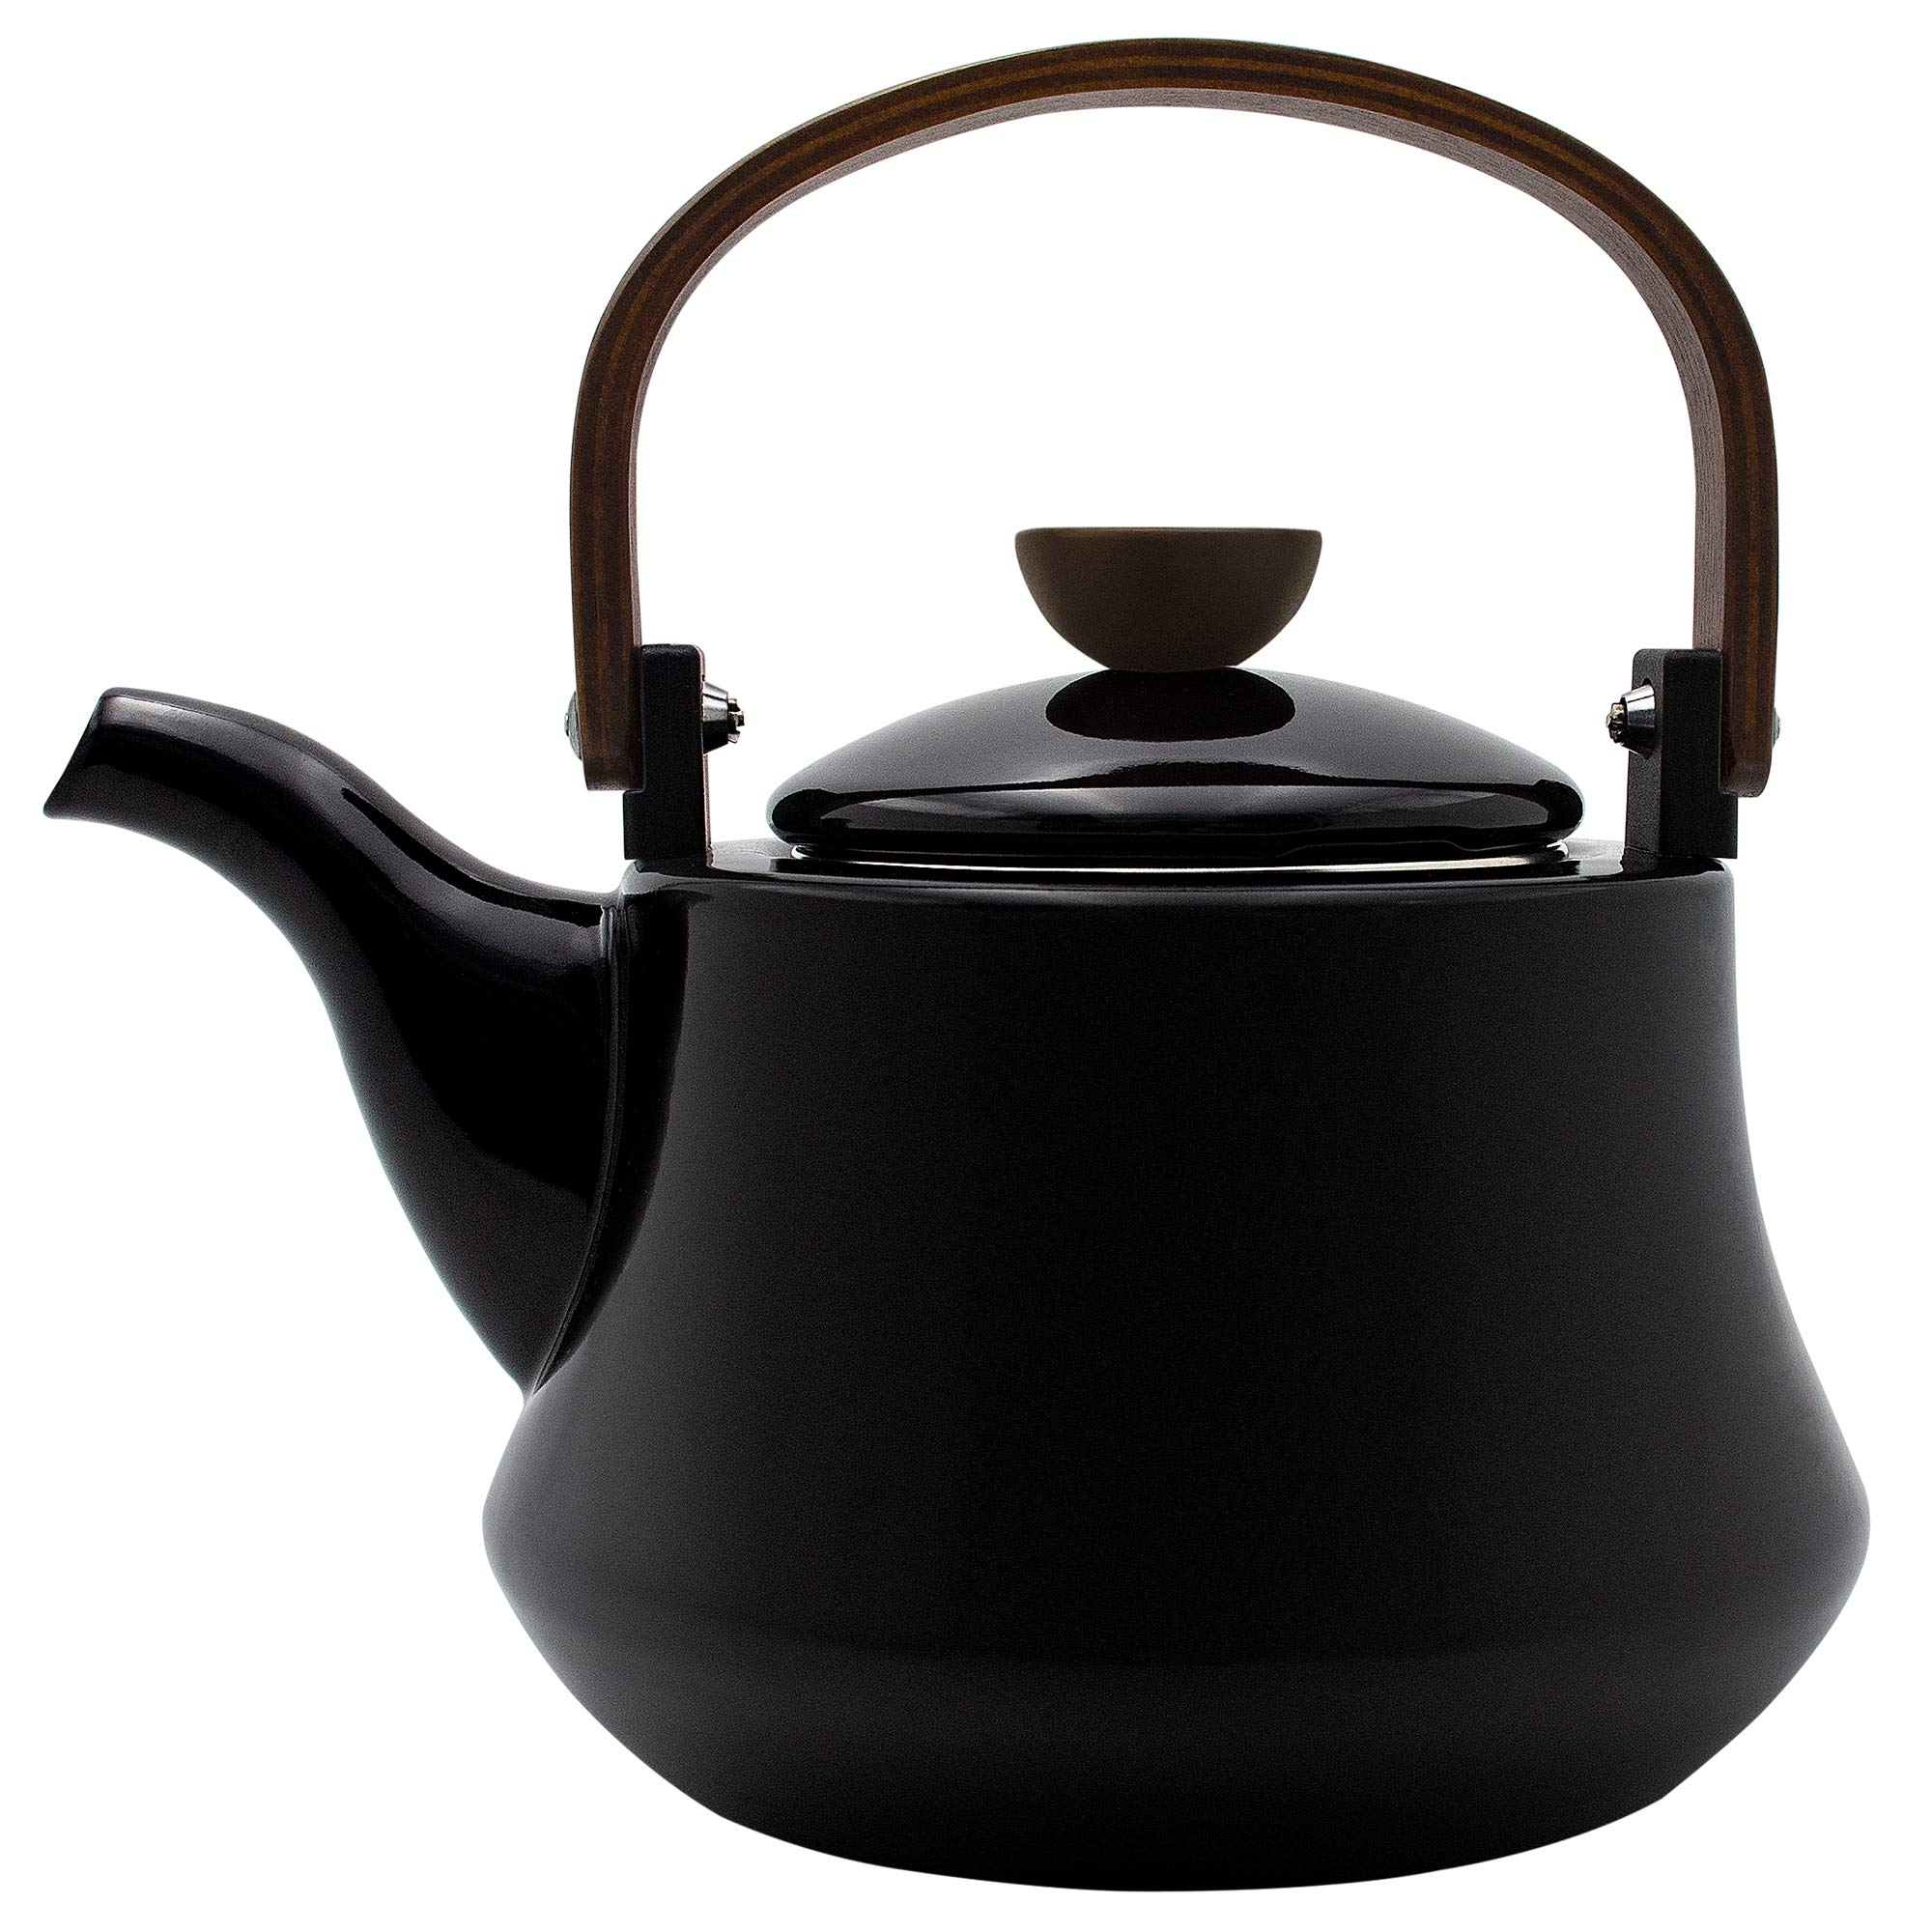 Enameled Tea kettles, AIDEA 1.8 Quart Ceramic Tea Kettle for Stovetop Induction, Enamel-on-Steel Serving Tea Pot with Wooden Handle, Large Porcelain Tea Kettle Black - [No Whistle] by AIDEA